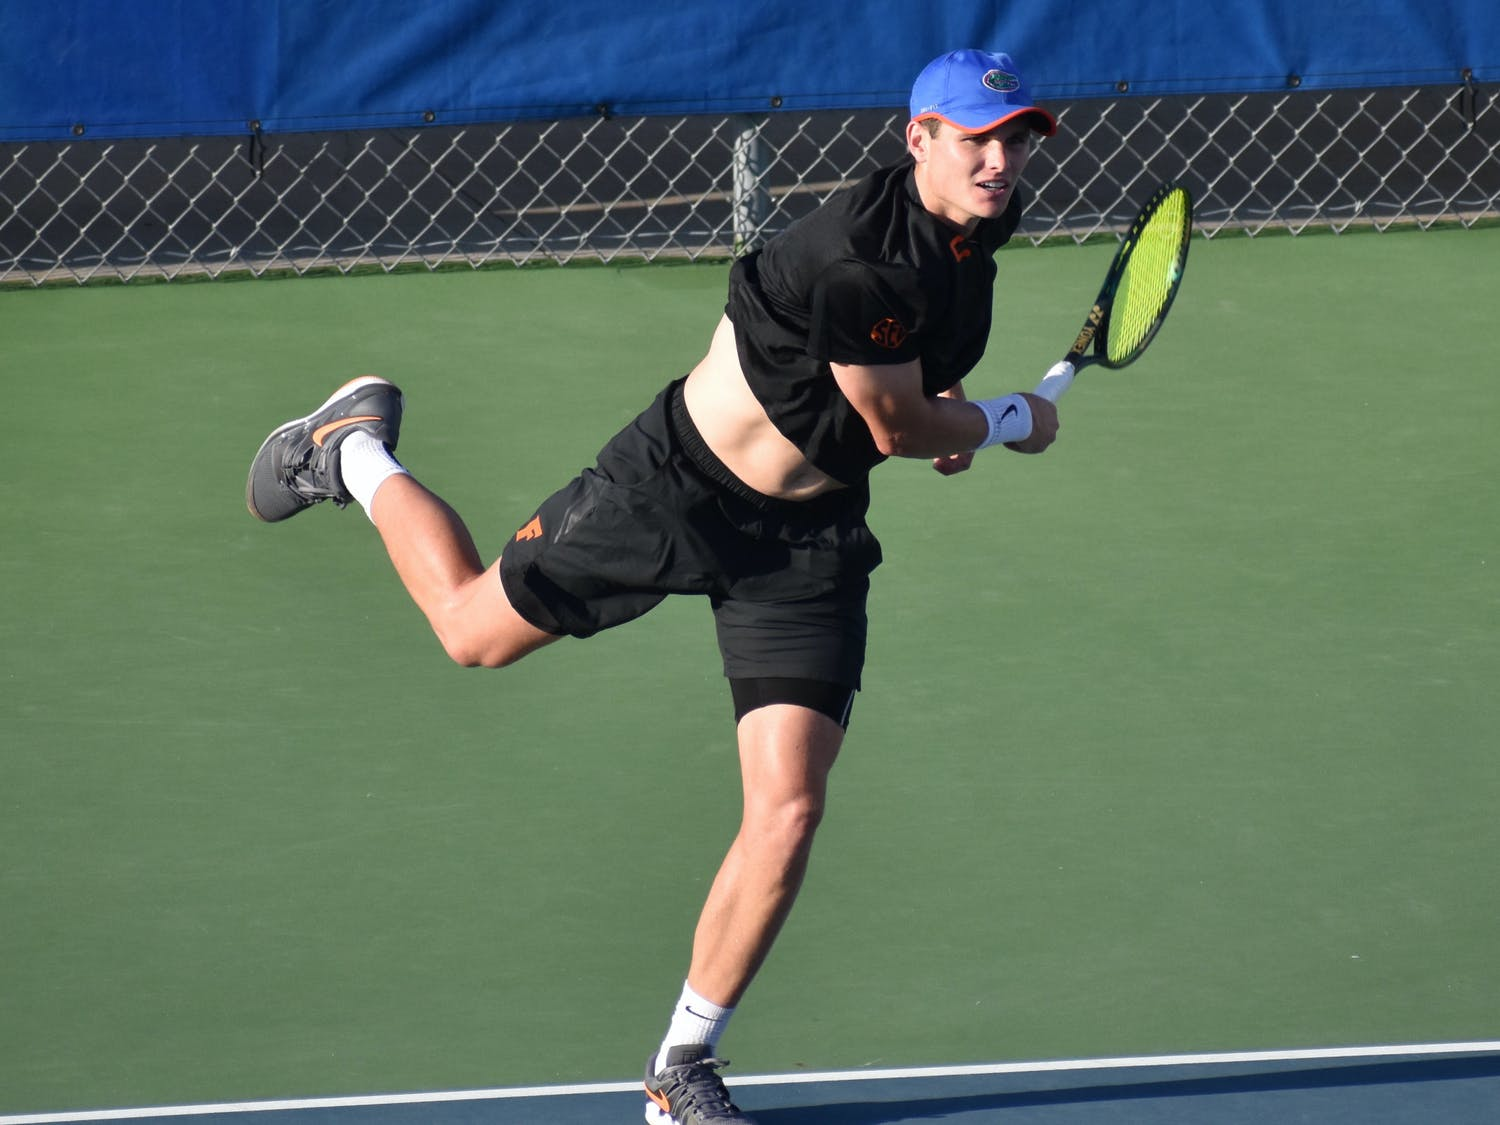 Sam Riffice against TCU on March 17. Riffice is set to compete in the individual singles title match Friday.